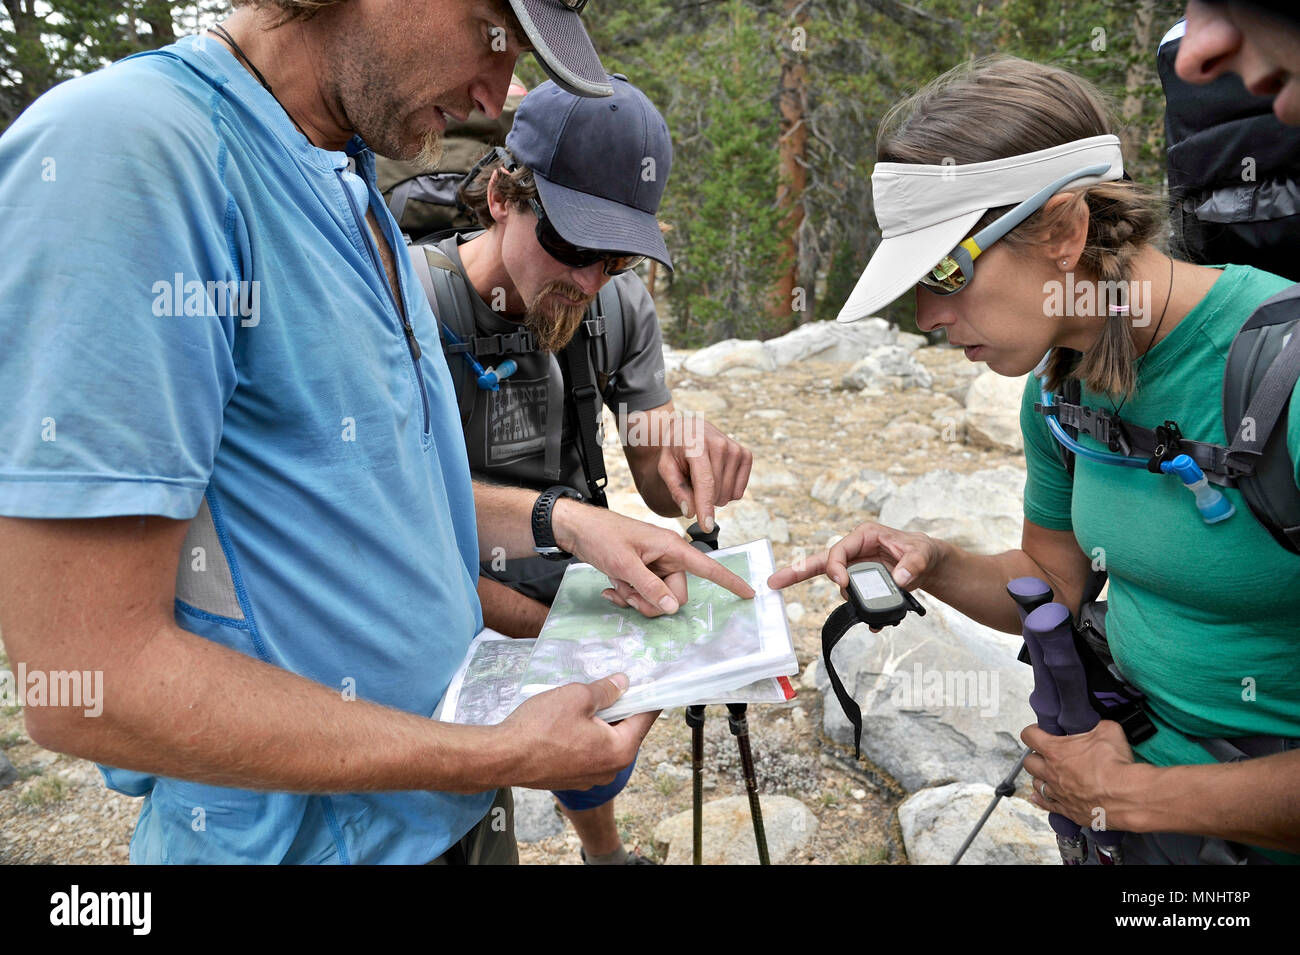 Backpackers refer to their maps in Glacier Valley on a two-week trek of the Sierra High Route in Kings Canyon National Park in California. The 200-mile route roughly parallels the popular John Muir Trail through the Sierra Nevada Range of California from Kings Canyon National Park to Yosemite National Park. - Stock Image